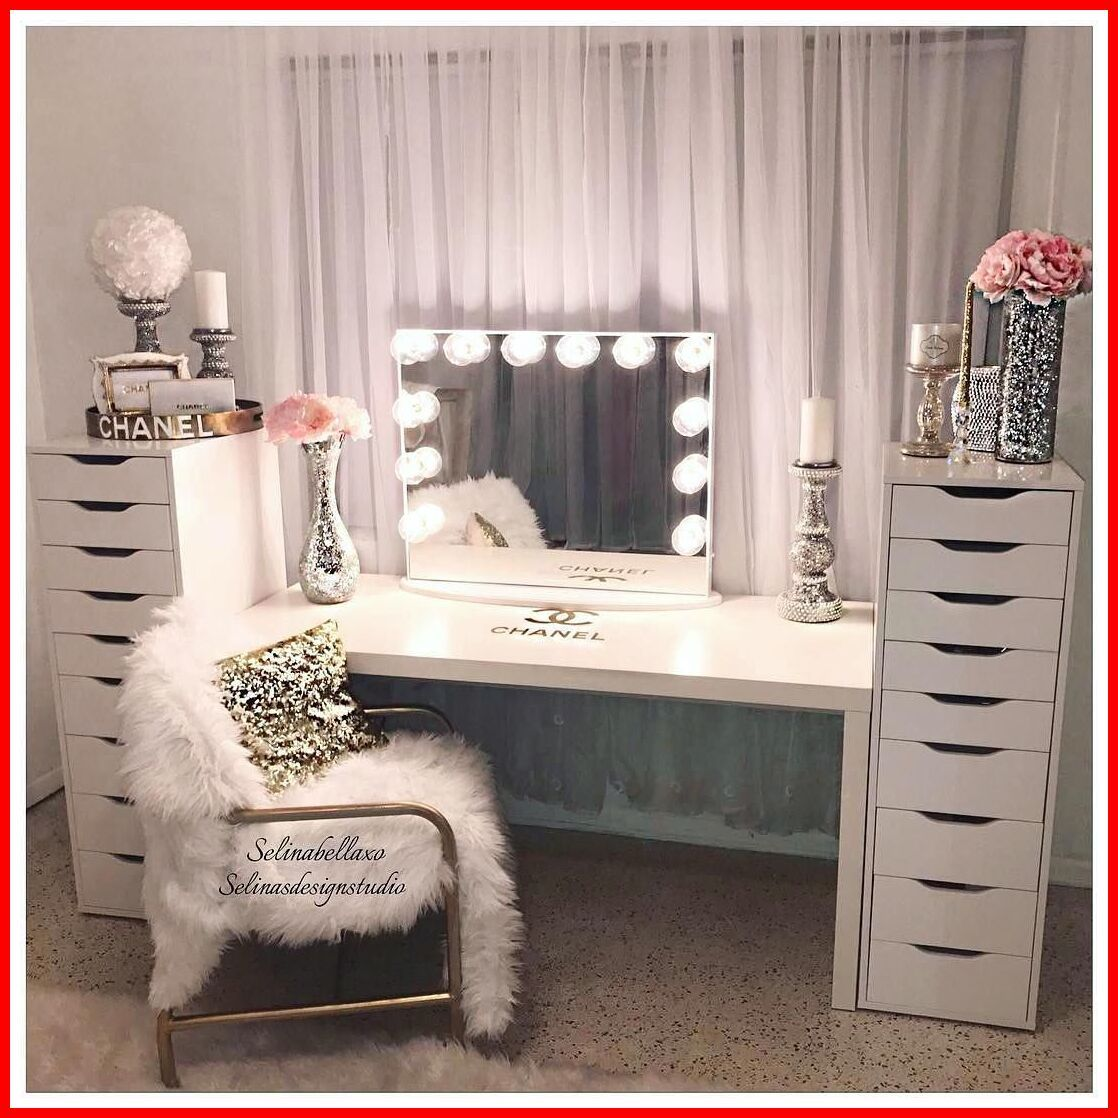 57 Reference Of Vanity With Lights Bedroom In 2020 Room Inspiration Glam Room Room Decor